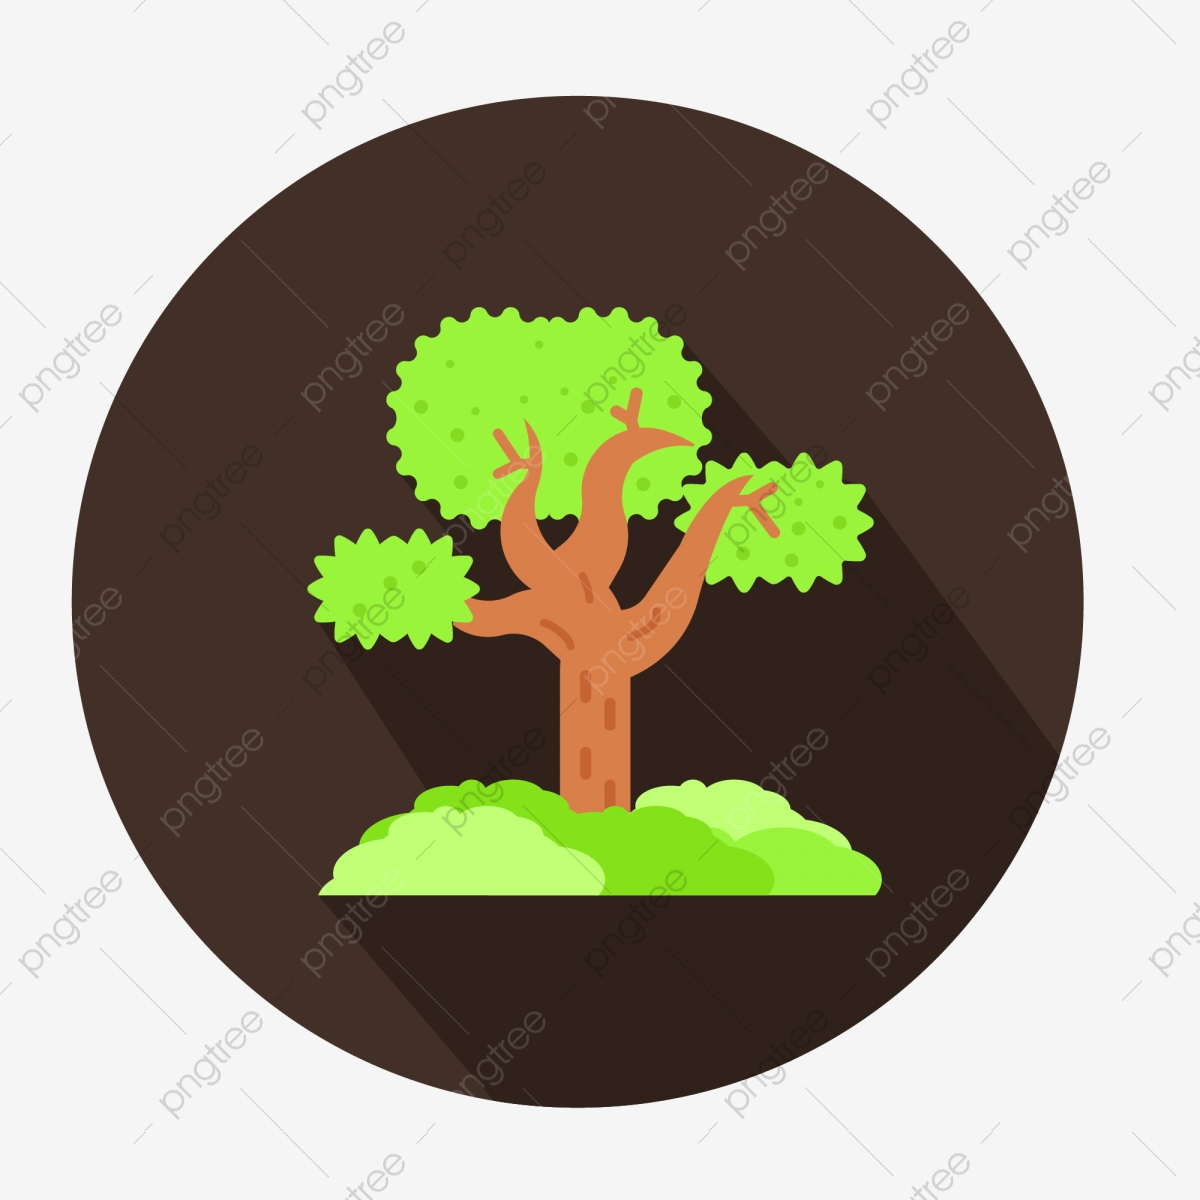 Cartoon Anime Green Tree Small Tree Evergreen Tree Vector Material Eucalyptus Cartoon Anime Green Tree Png And Vector With Transparent Background For Free Download Each plant is sheltered from the north and. https pngtree com freepng cartoon anime green tree small tree evergreen tree vector material eucalyptus 4360250 html